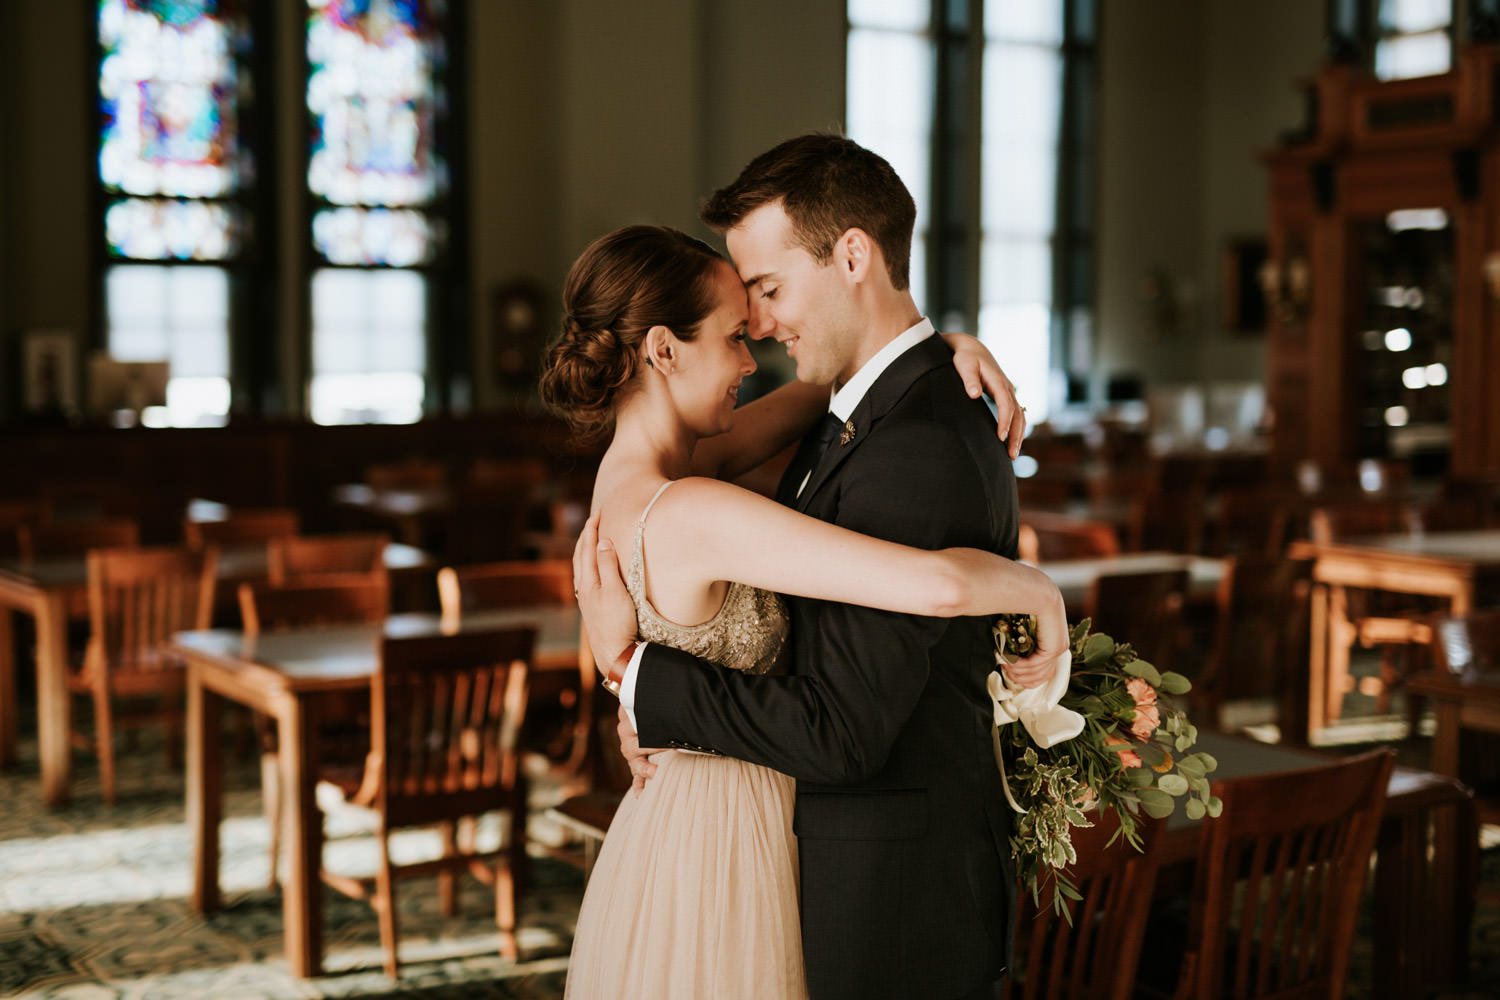 Bride and groom embrace in library of Saint Ignatius College at Chicago